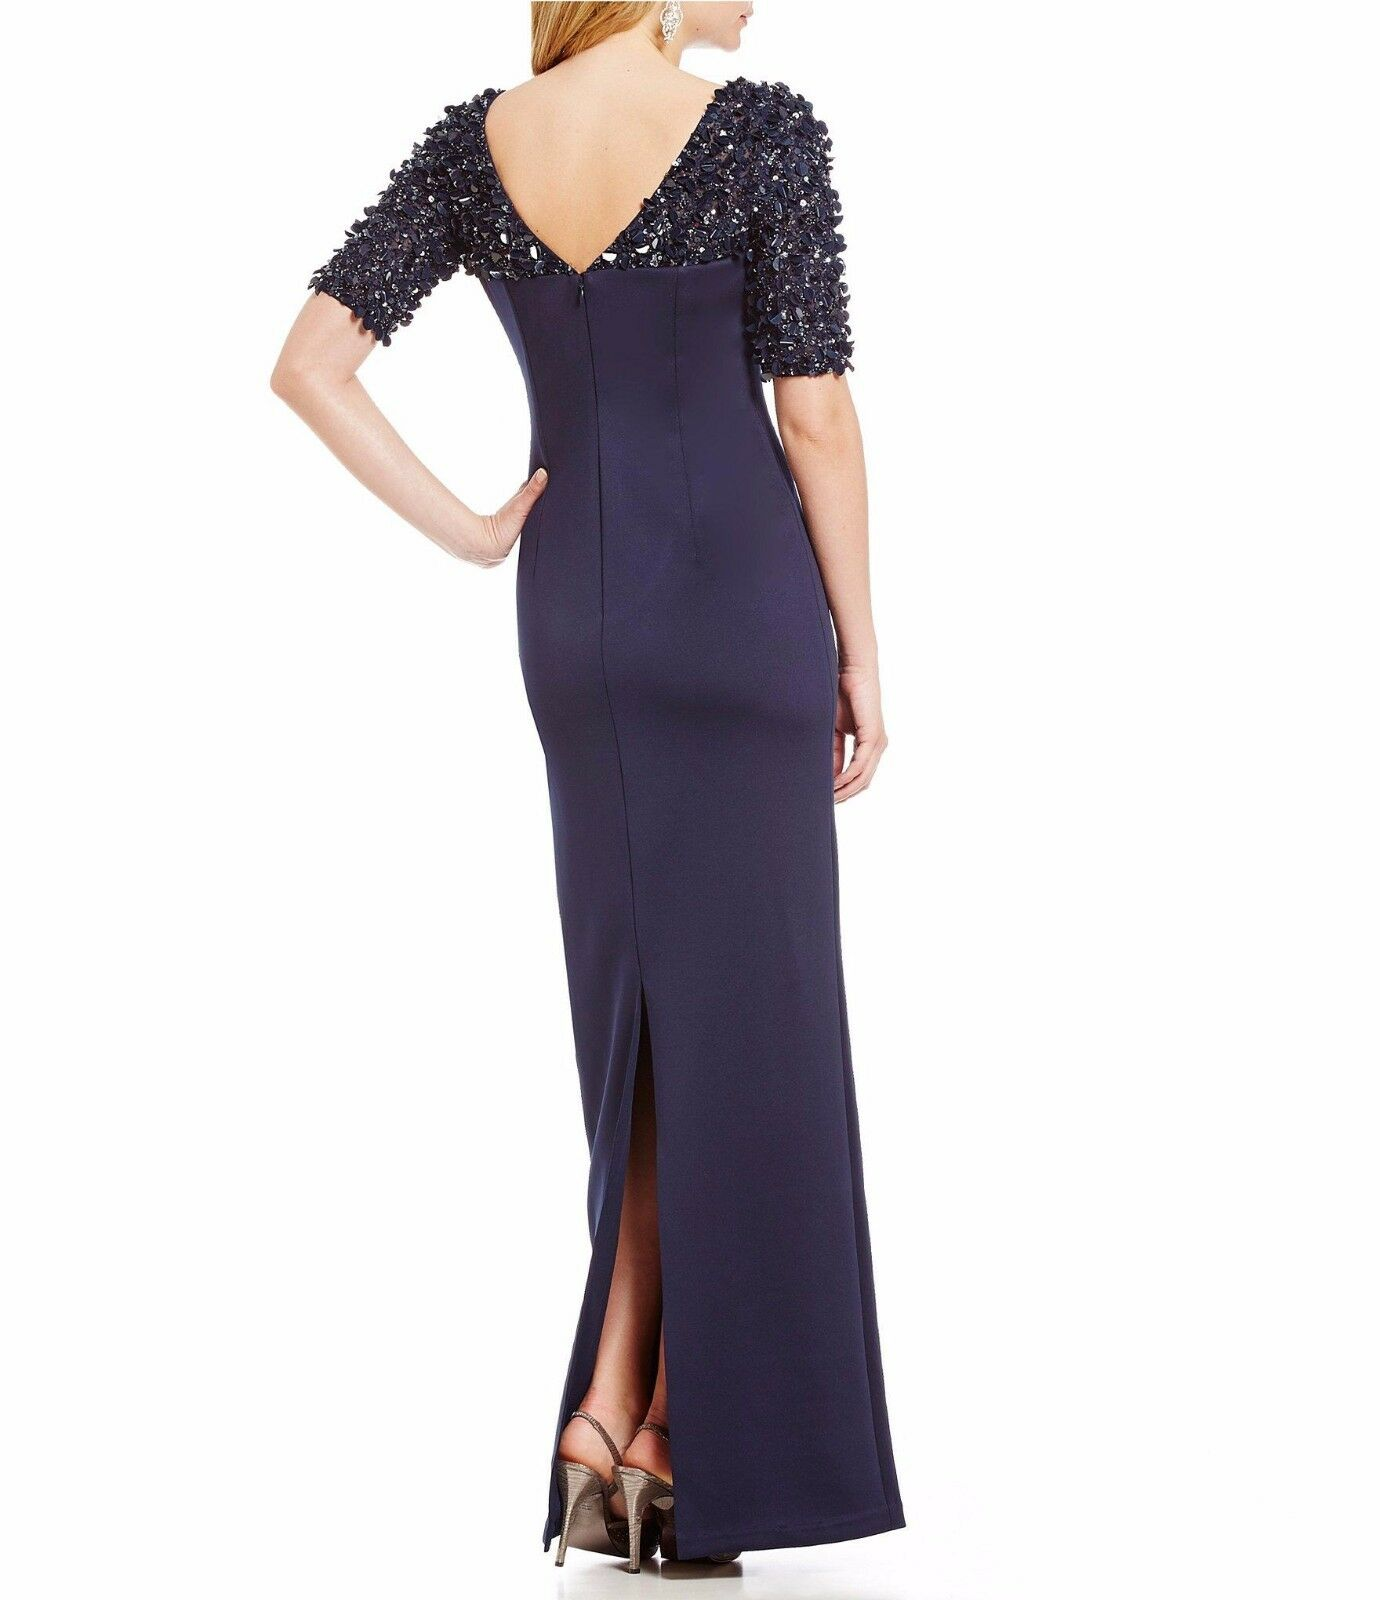 Adrianna Papell Navy Blue Beaded Stretch Column Gown Sequin Sleeve ...